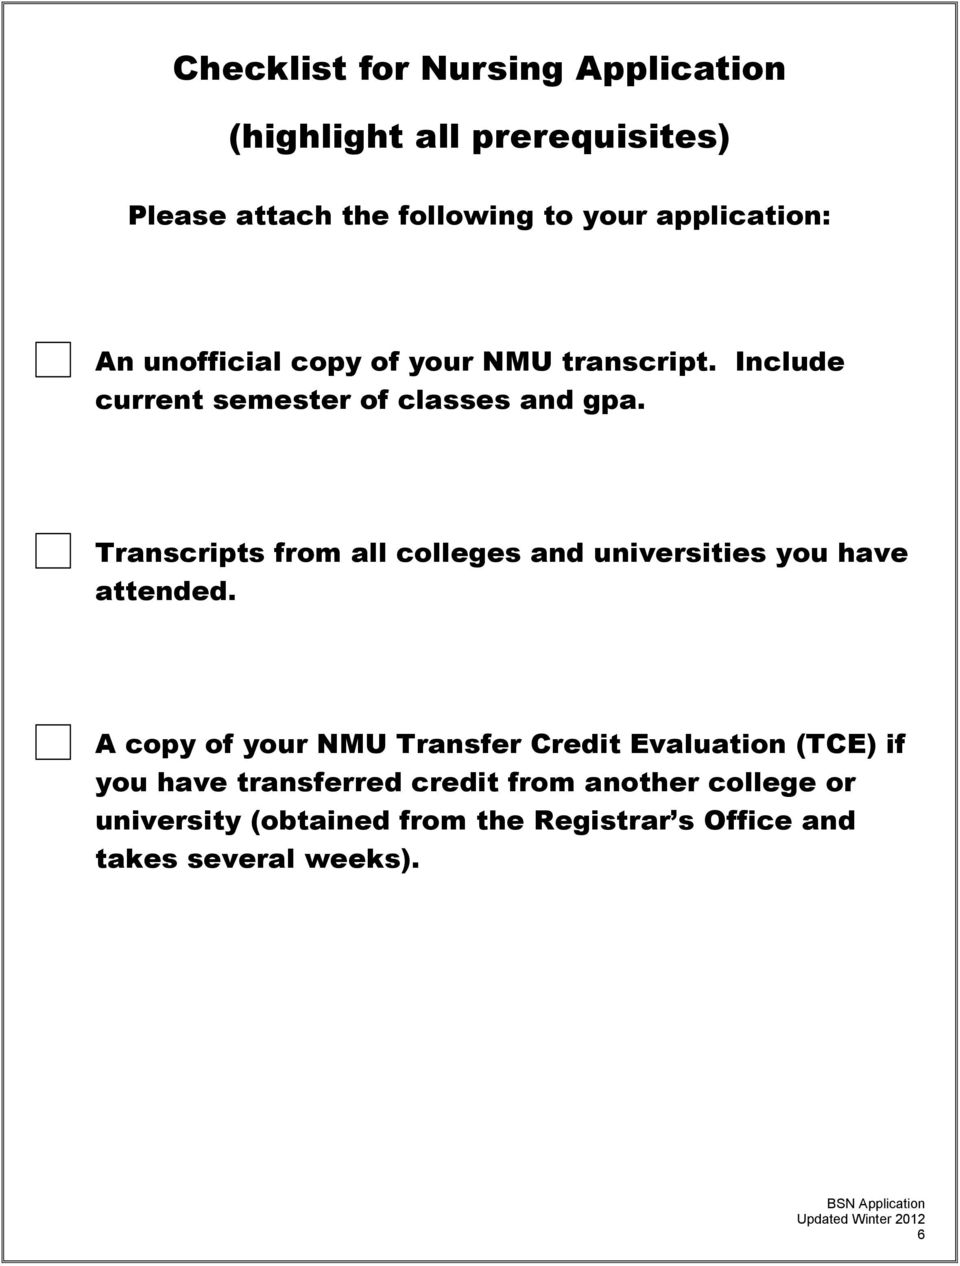 Transcripts from all colleges and universities you have attended.